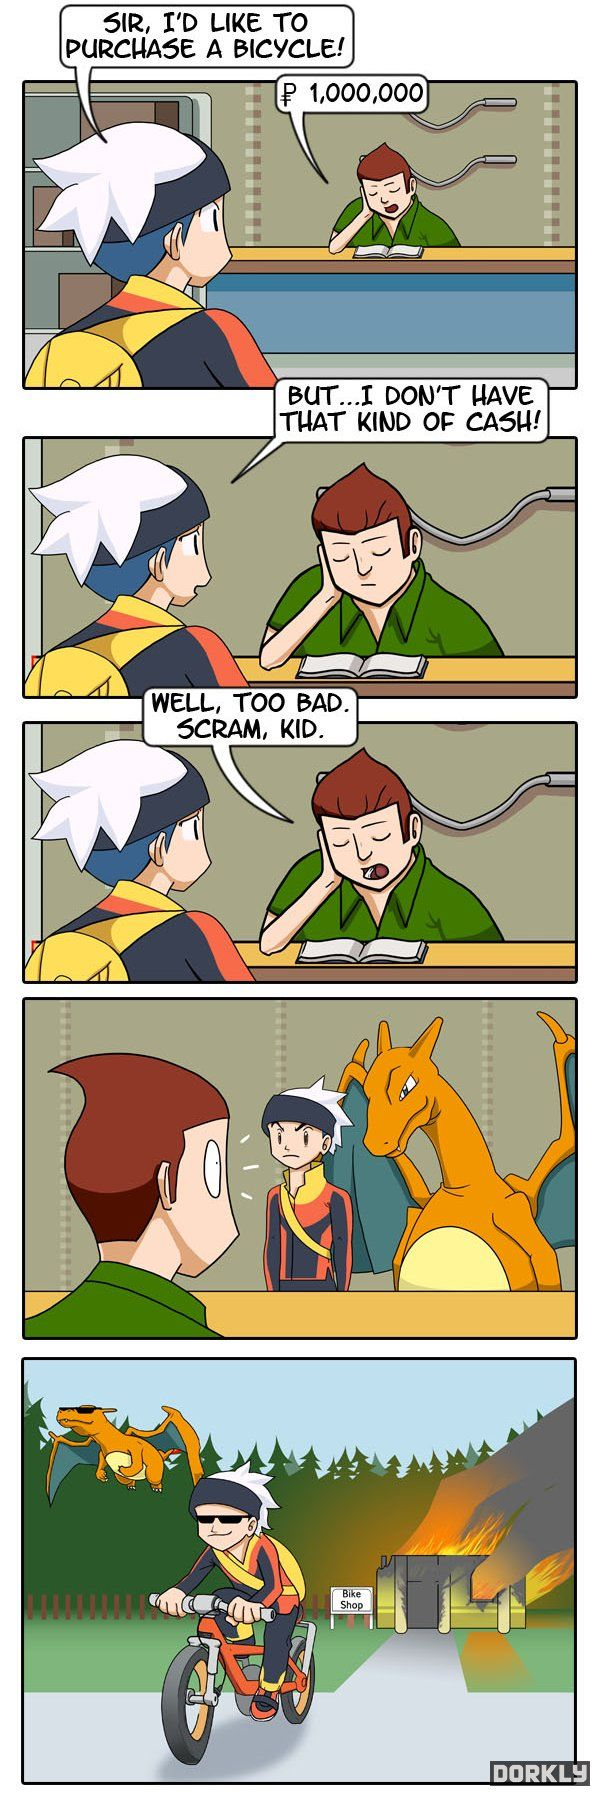 See, I always chose Charmander as my starter Pokemon. What happened to the bike voucher though?